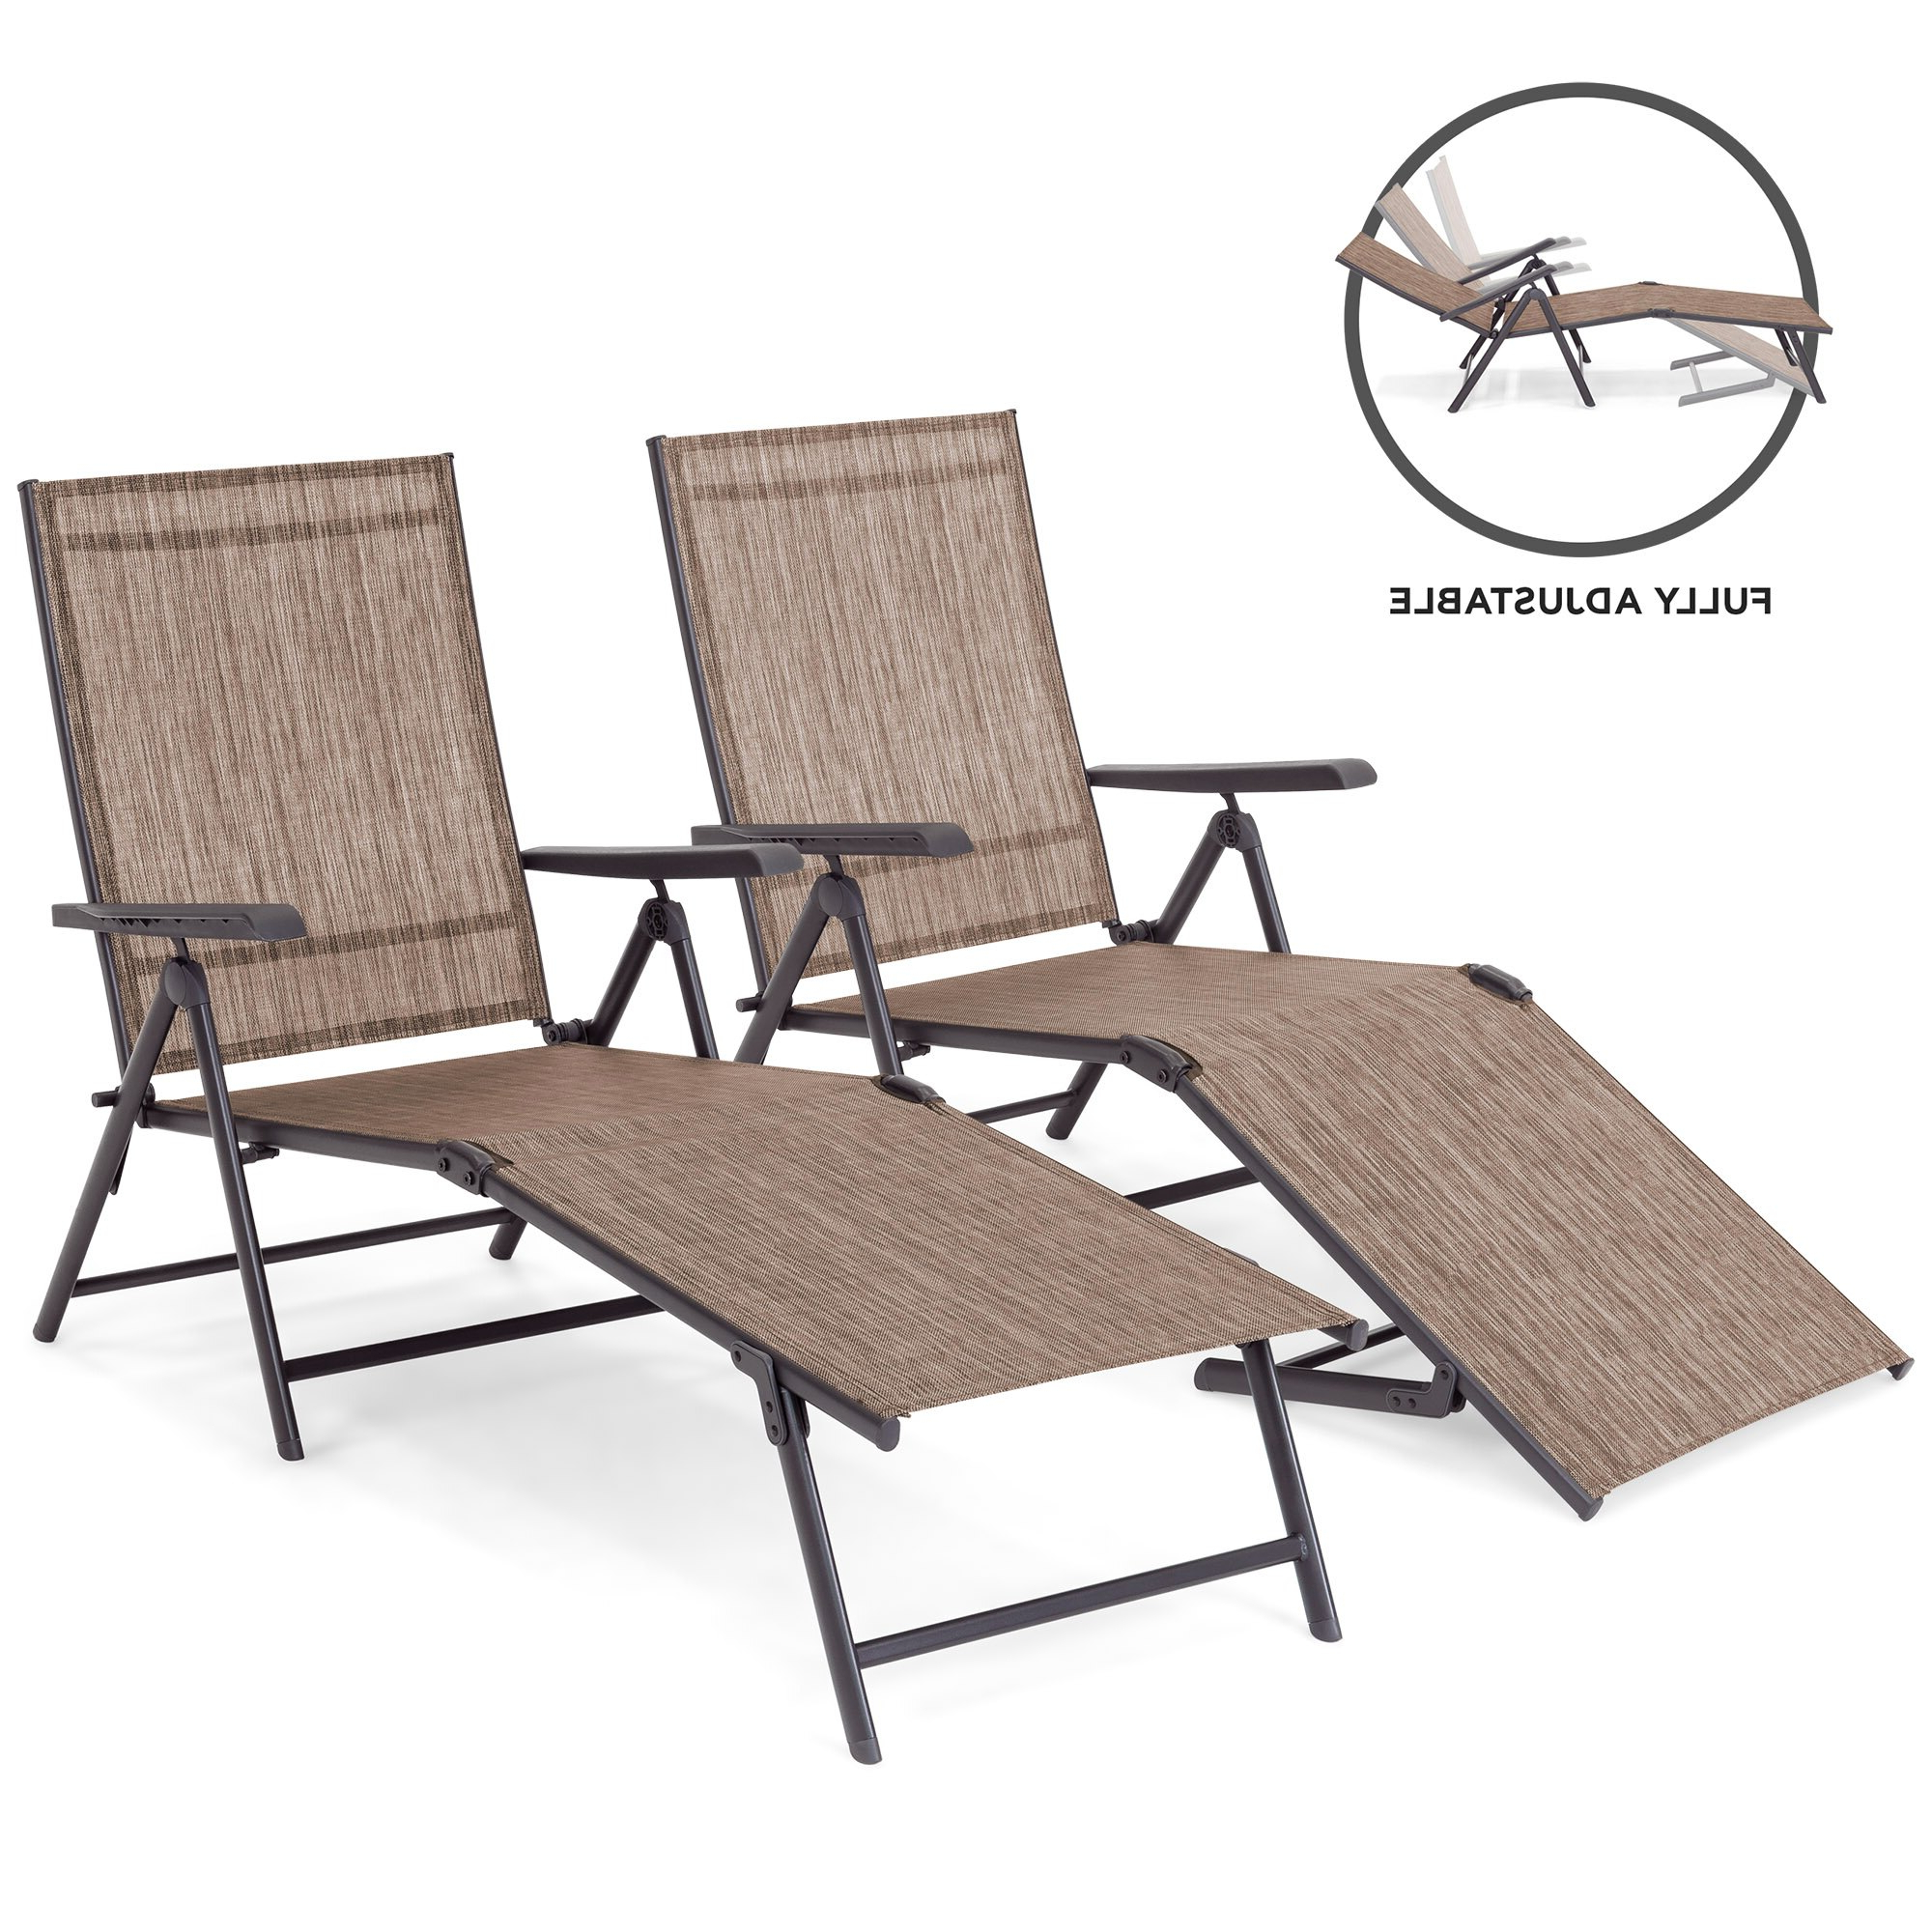 Bestchoiceproducts: Best Choice Products Set Of 2 Outdoor Adjustable Folding Chaise Lounge Recliner Chairs For Patio, Poolside, Deck – Brown (View 13 of 25)